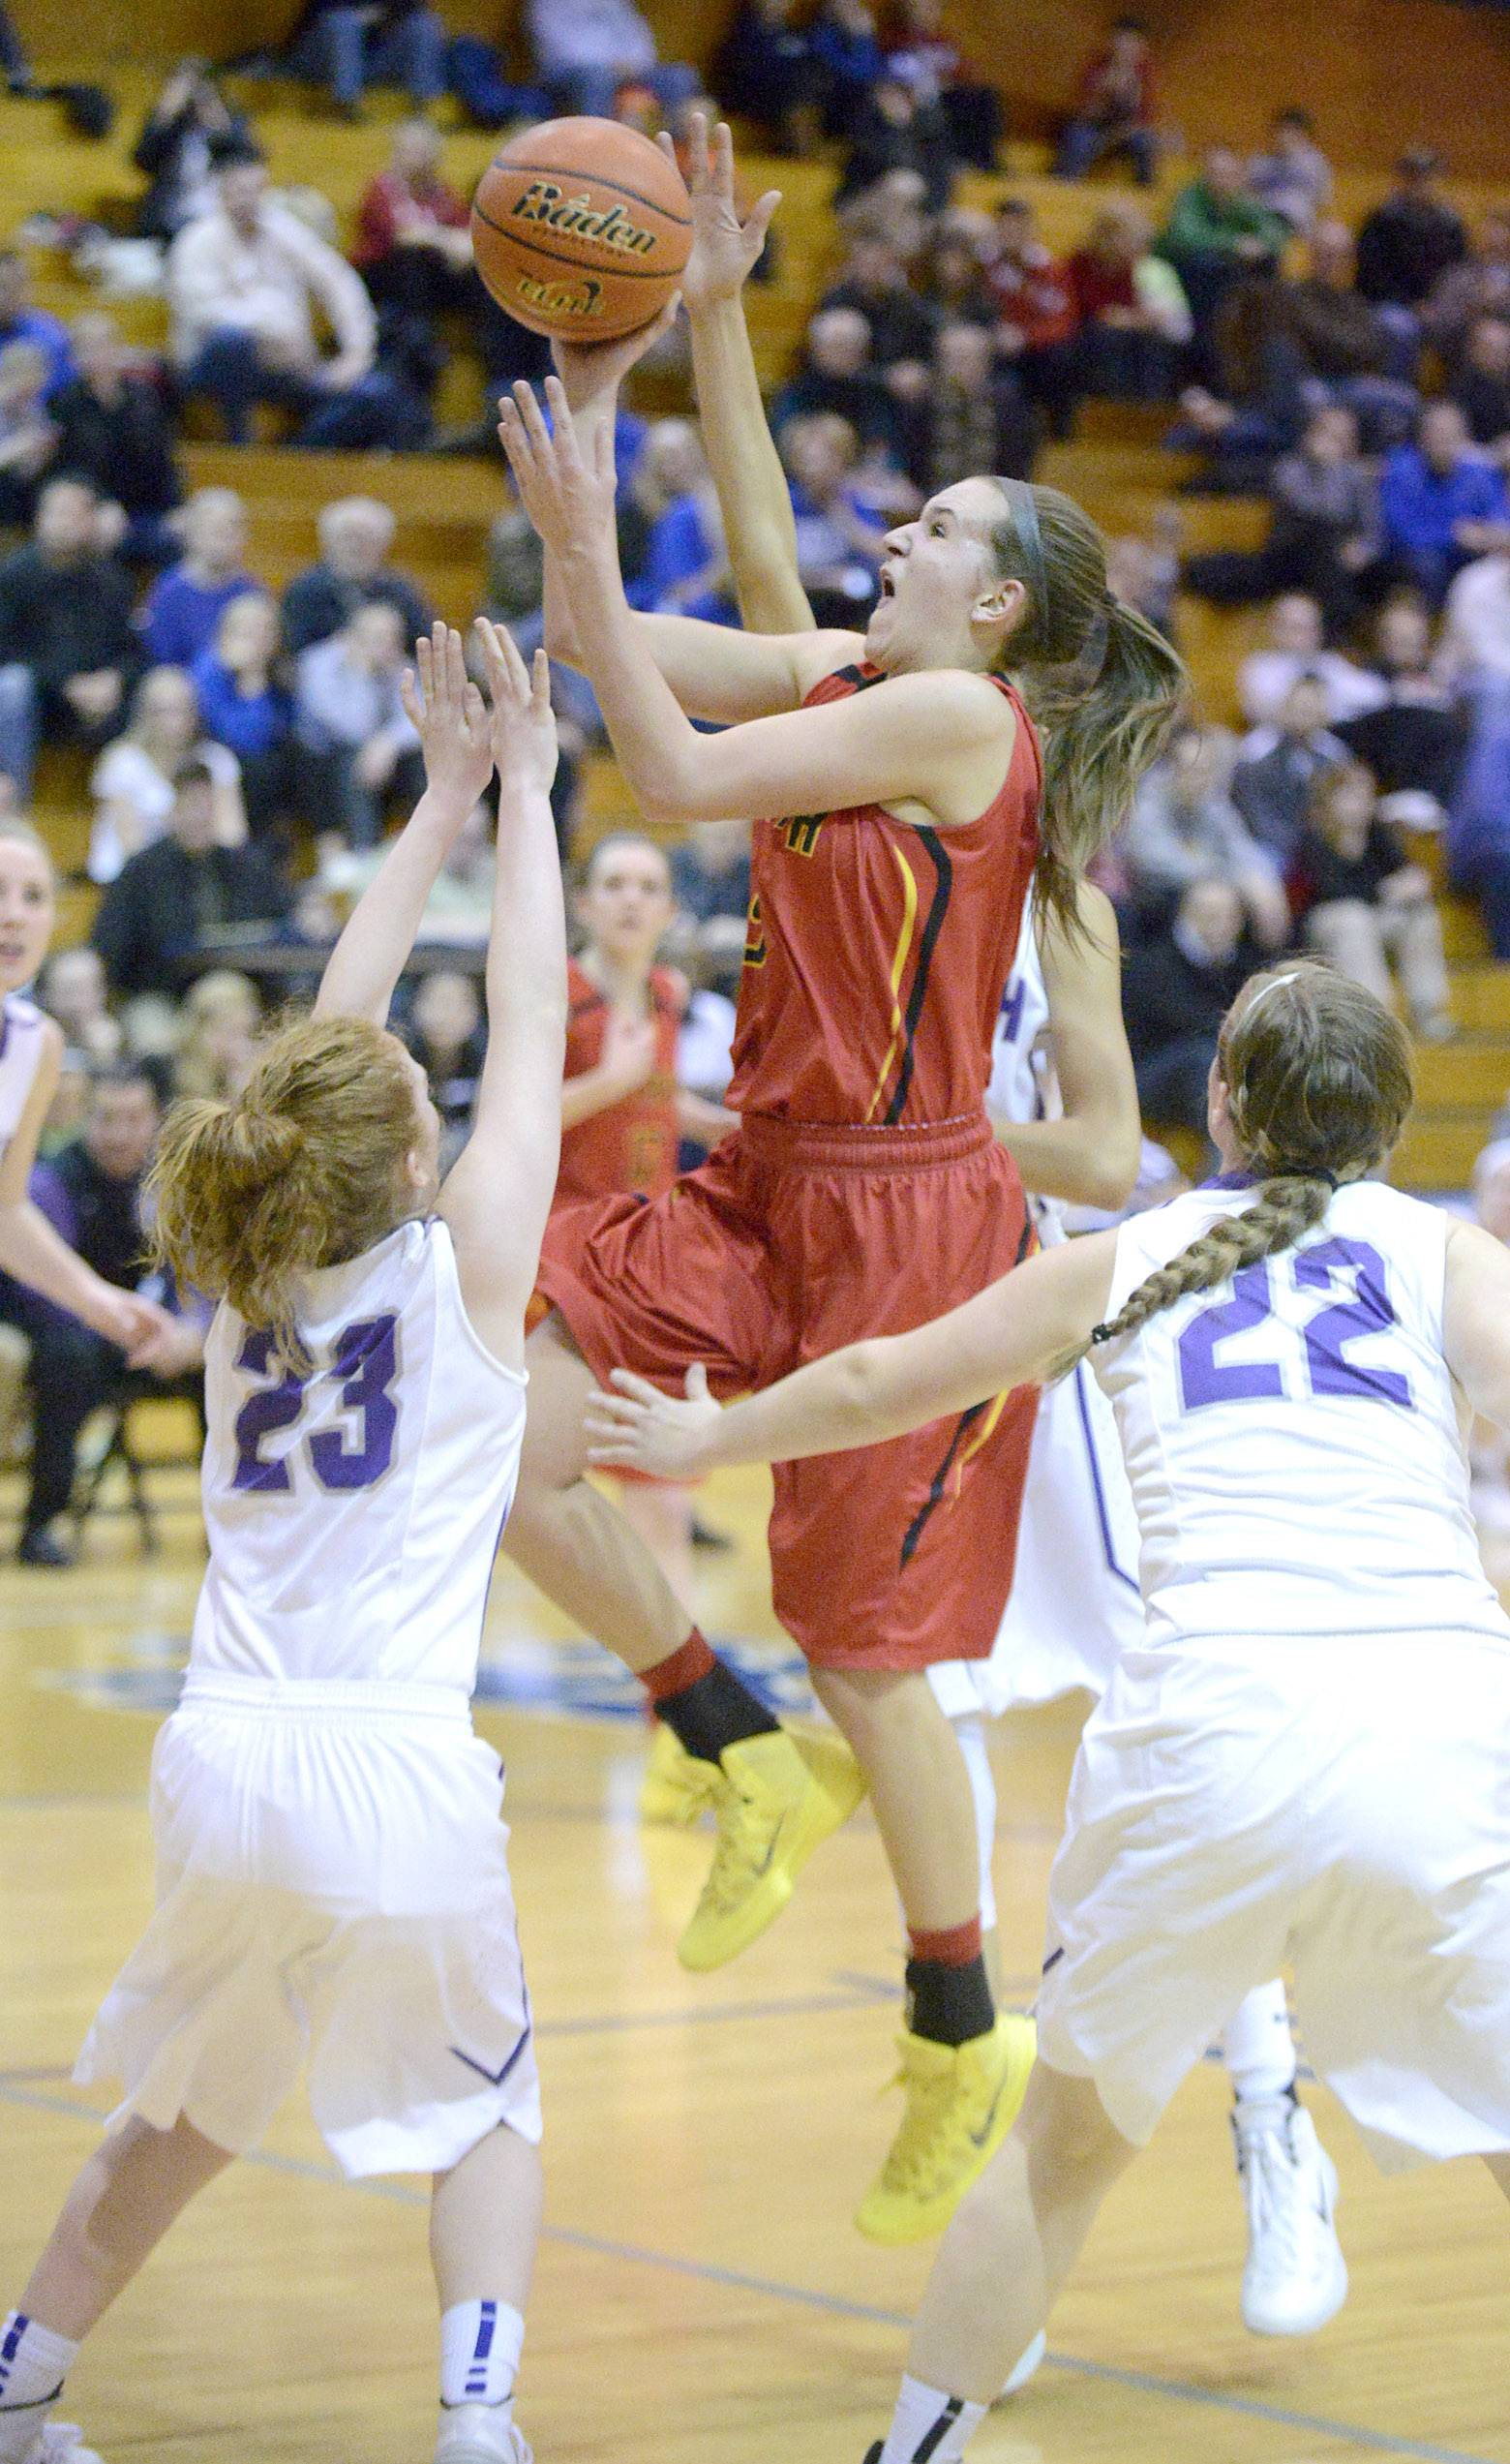 Batavia's Liza Fruendt shots over a block by Downers Grove North's Lauren Porcelli, left, and Colleen Horn in the second quarter of the 4A sectional semifinals at Addison Trail High School in Addison on Tuesday, February 25.